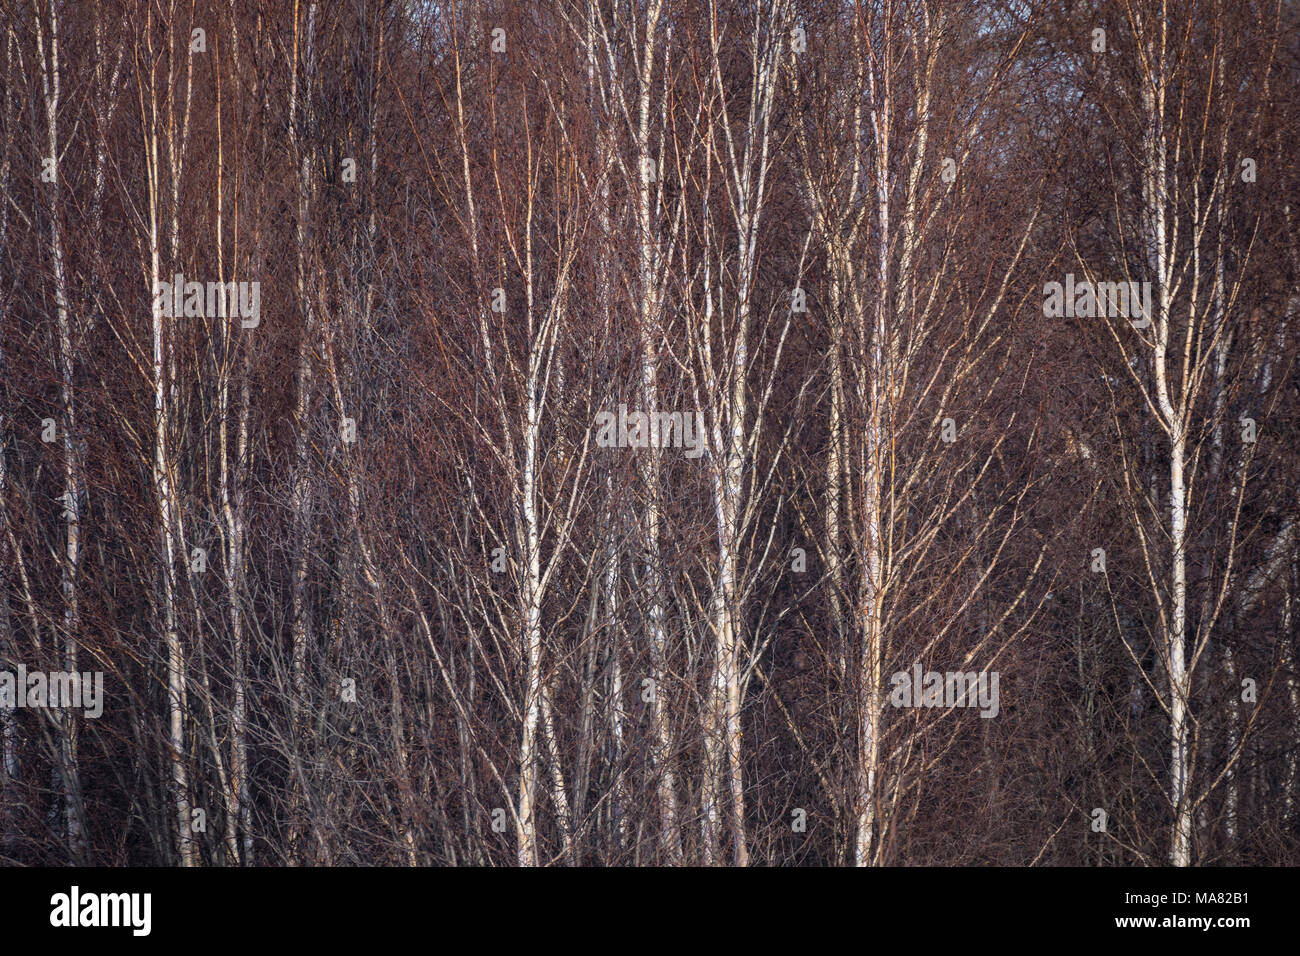 Abstract nature background, birch tree trunks with no leaves - Stock Image